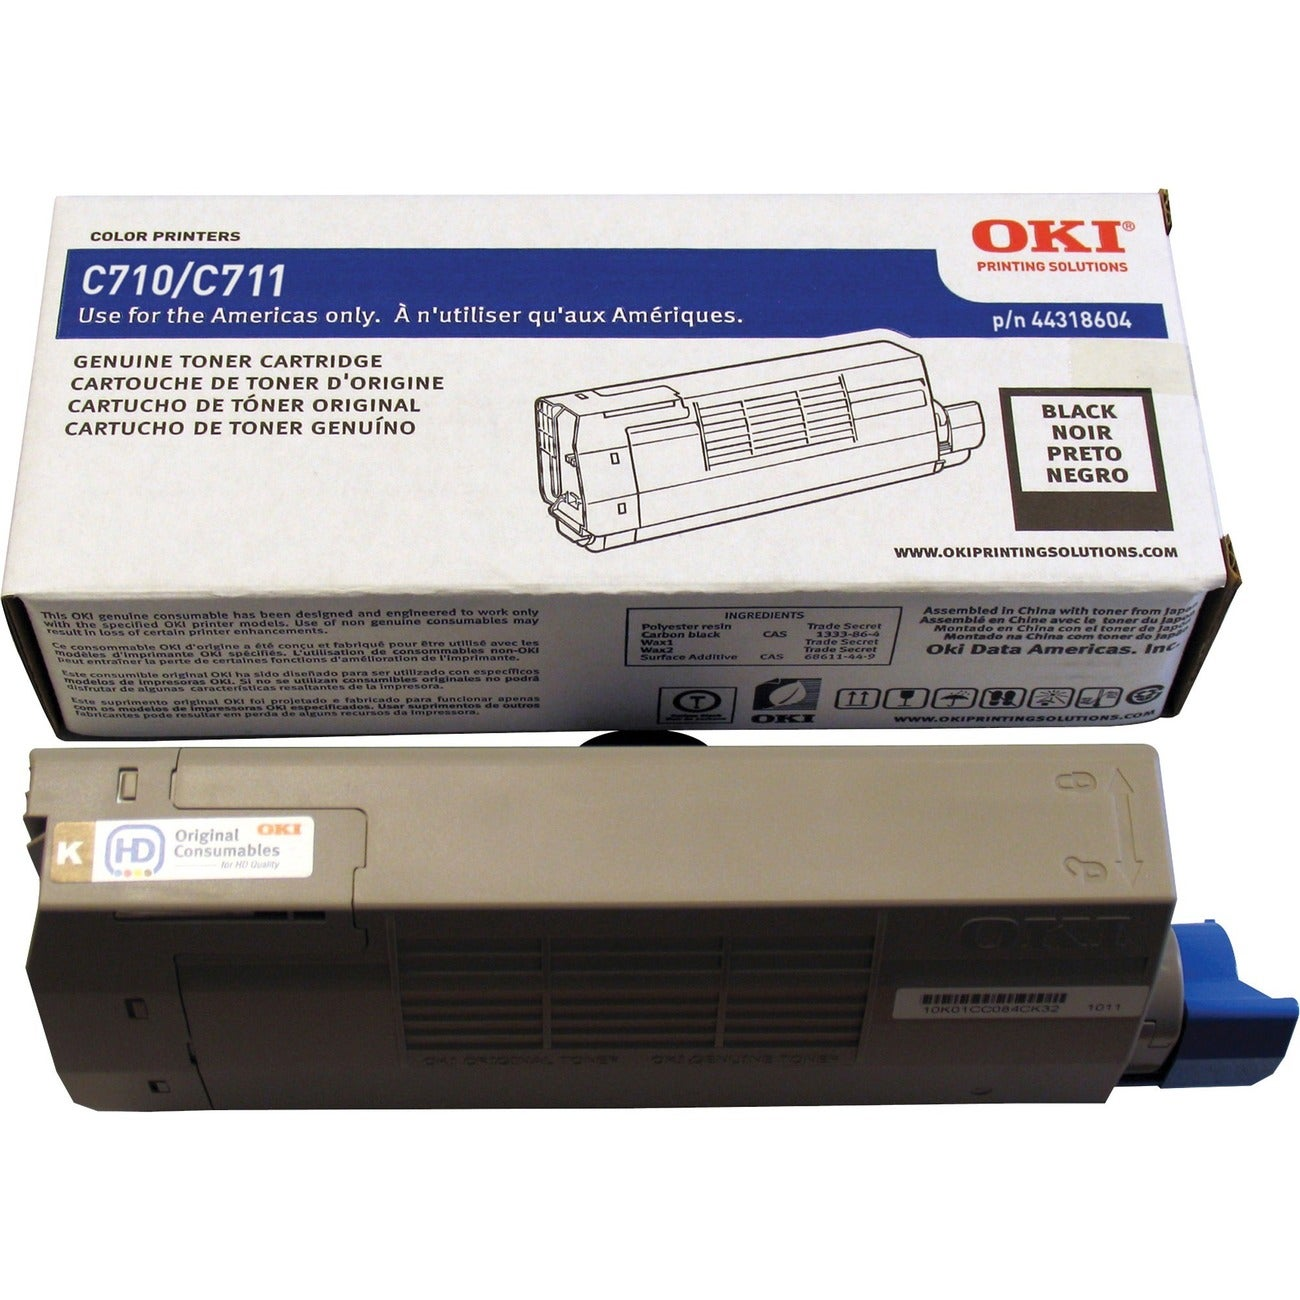 Oki 44318604 Toner Cartridge - Black - Thumbnail 0